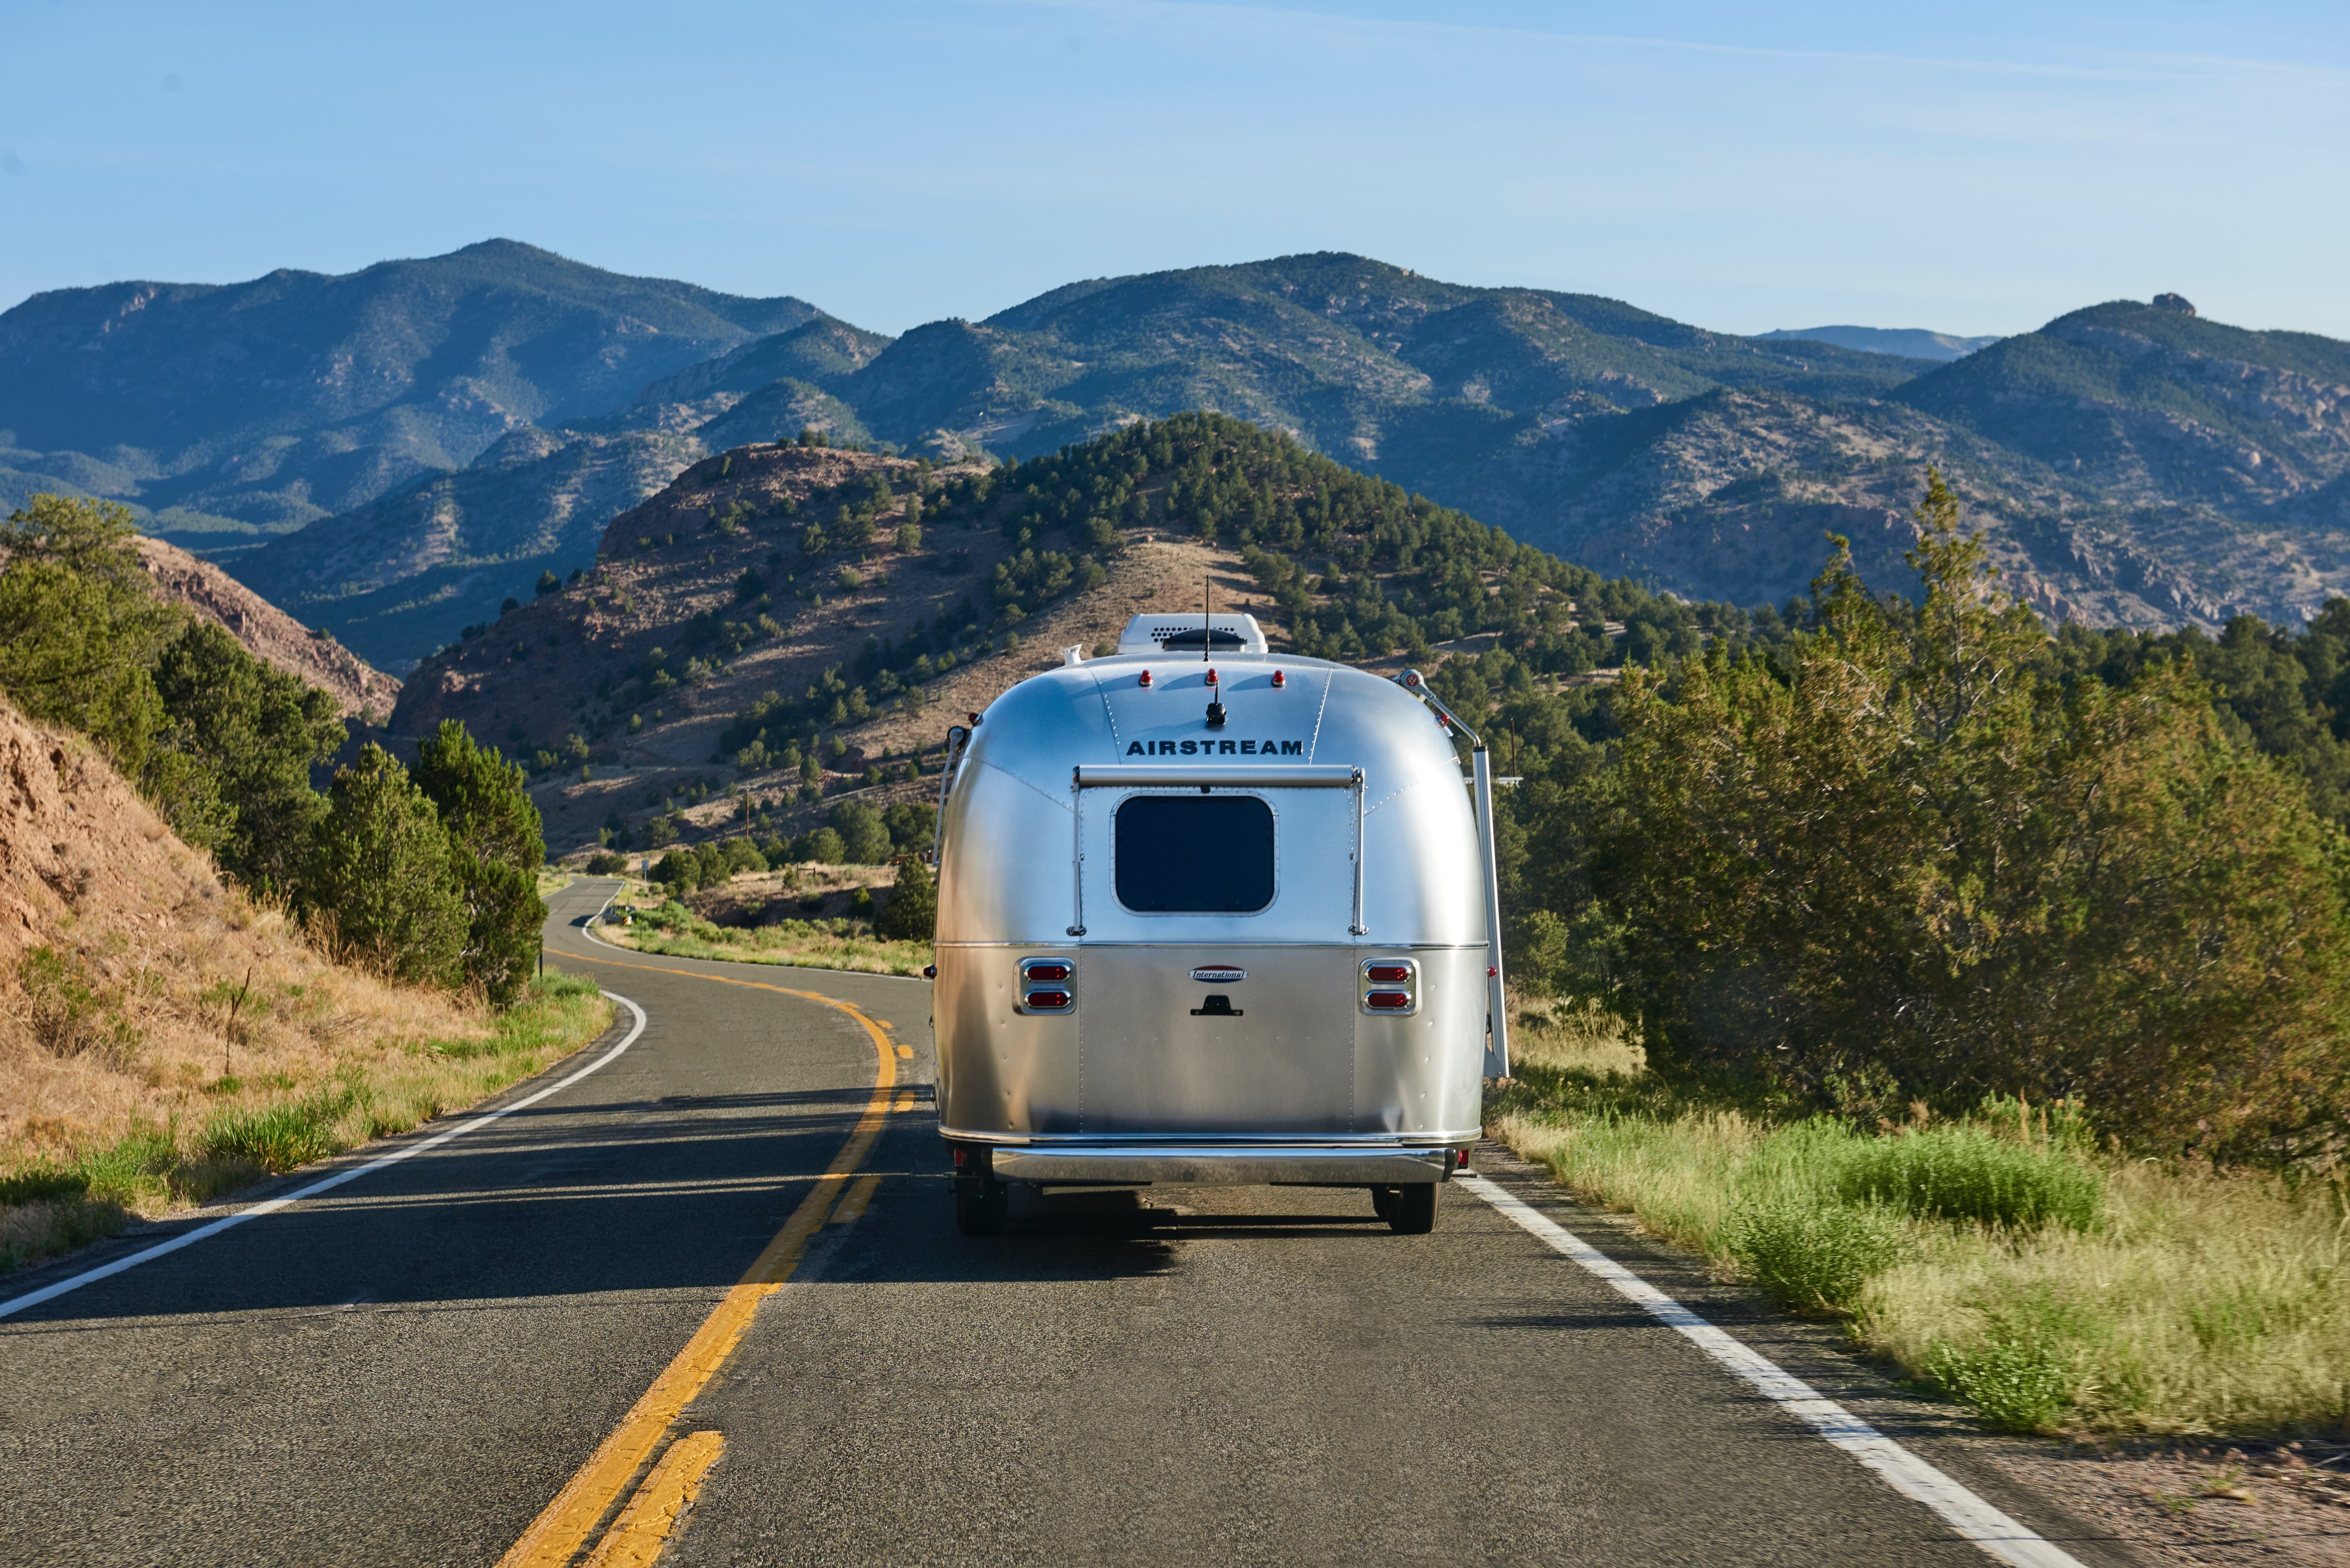 Airstream Heading Into Mountains